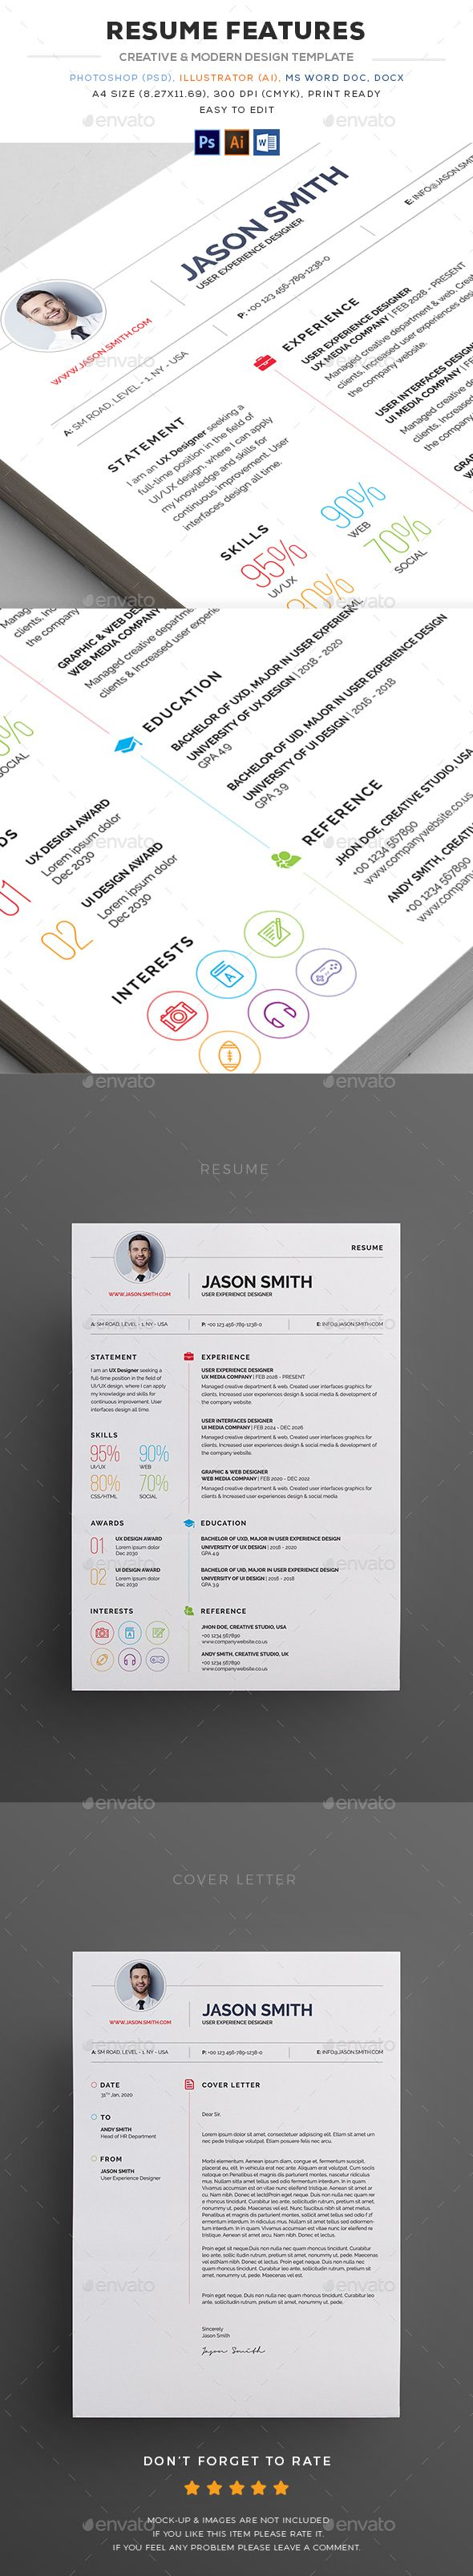 Illustrator Resume Templates 60 Best Cv  Resume Images On Pinterest  Resume Templates Resume